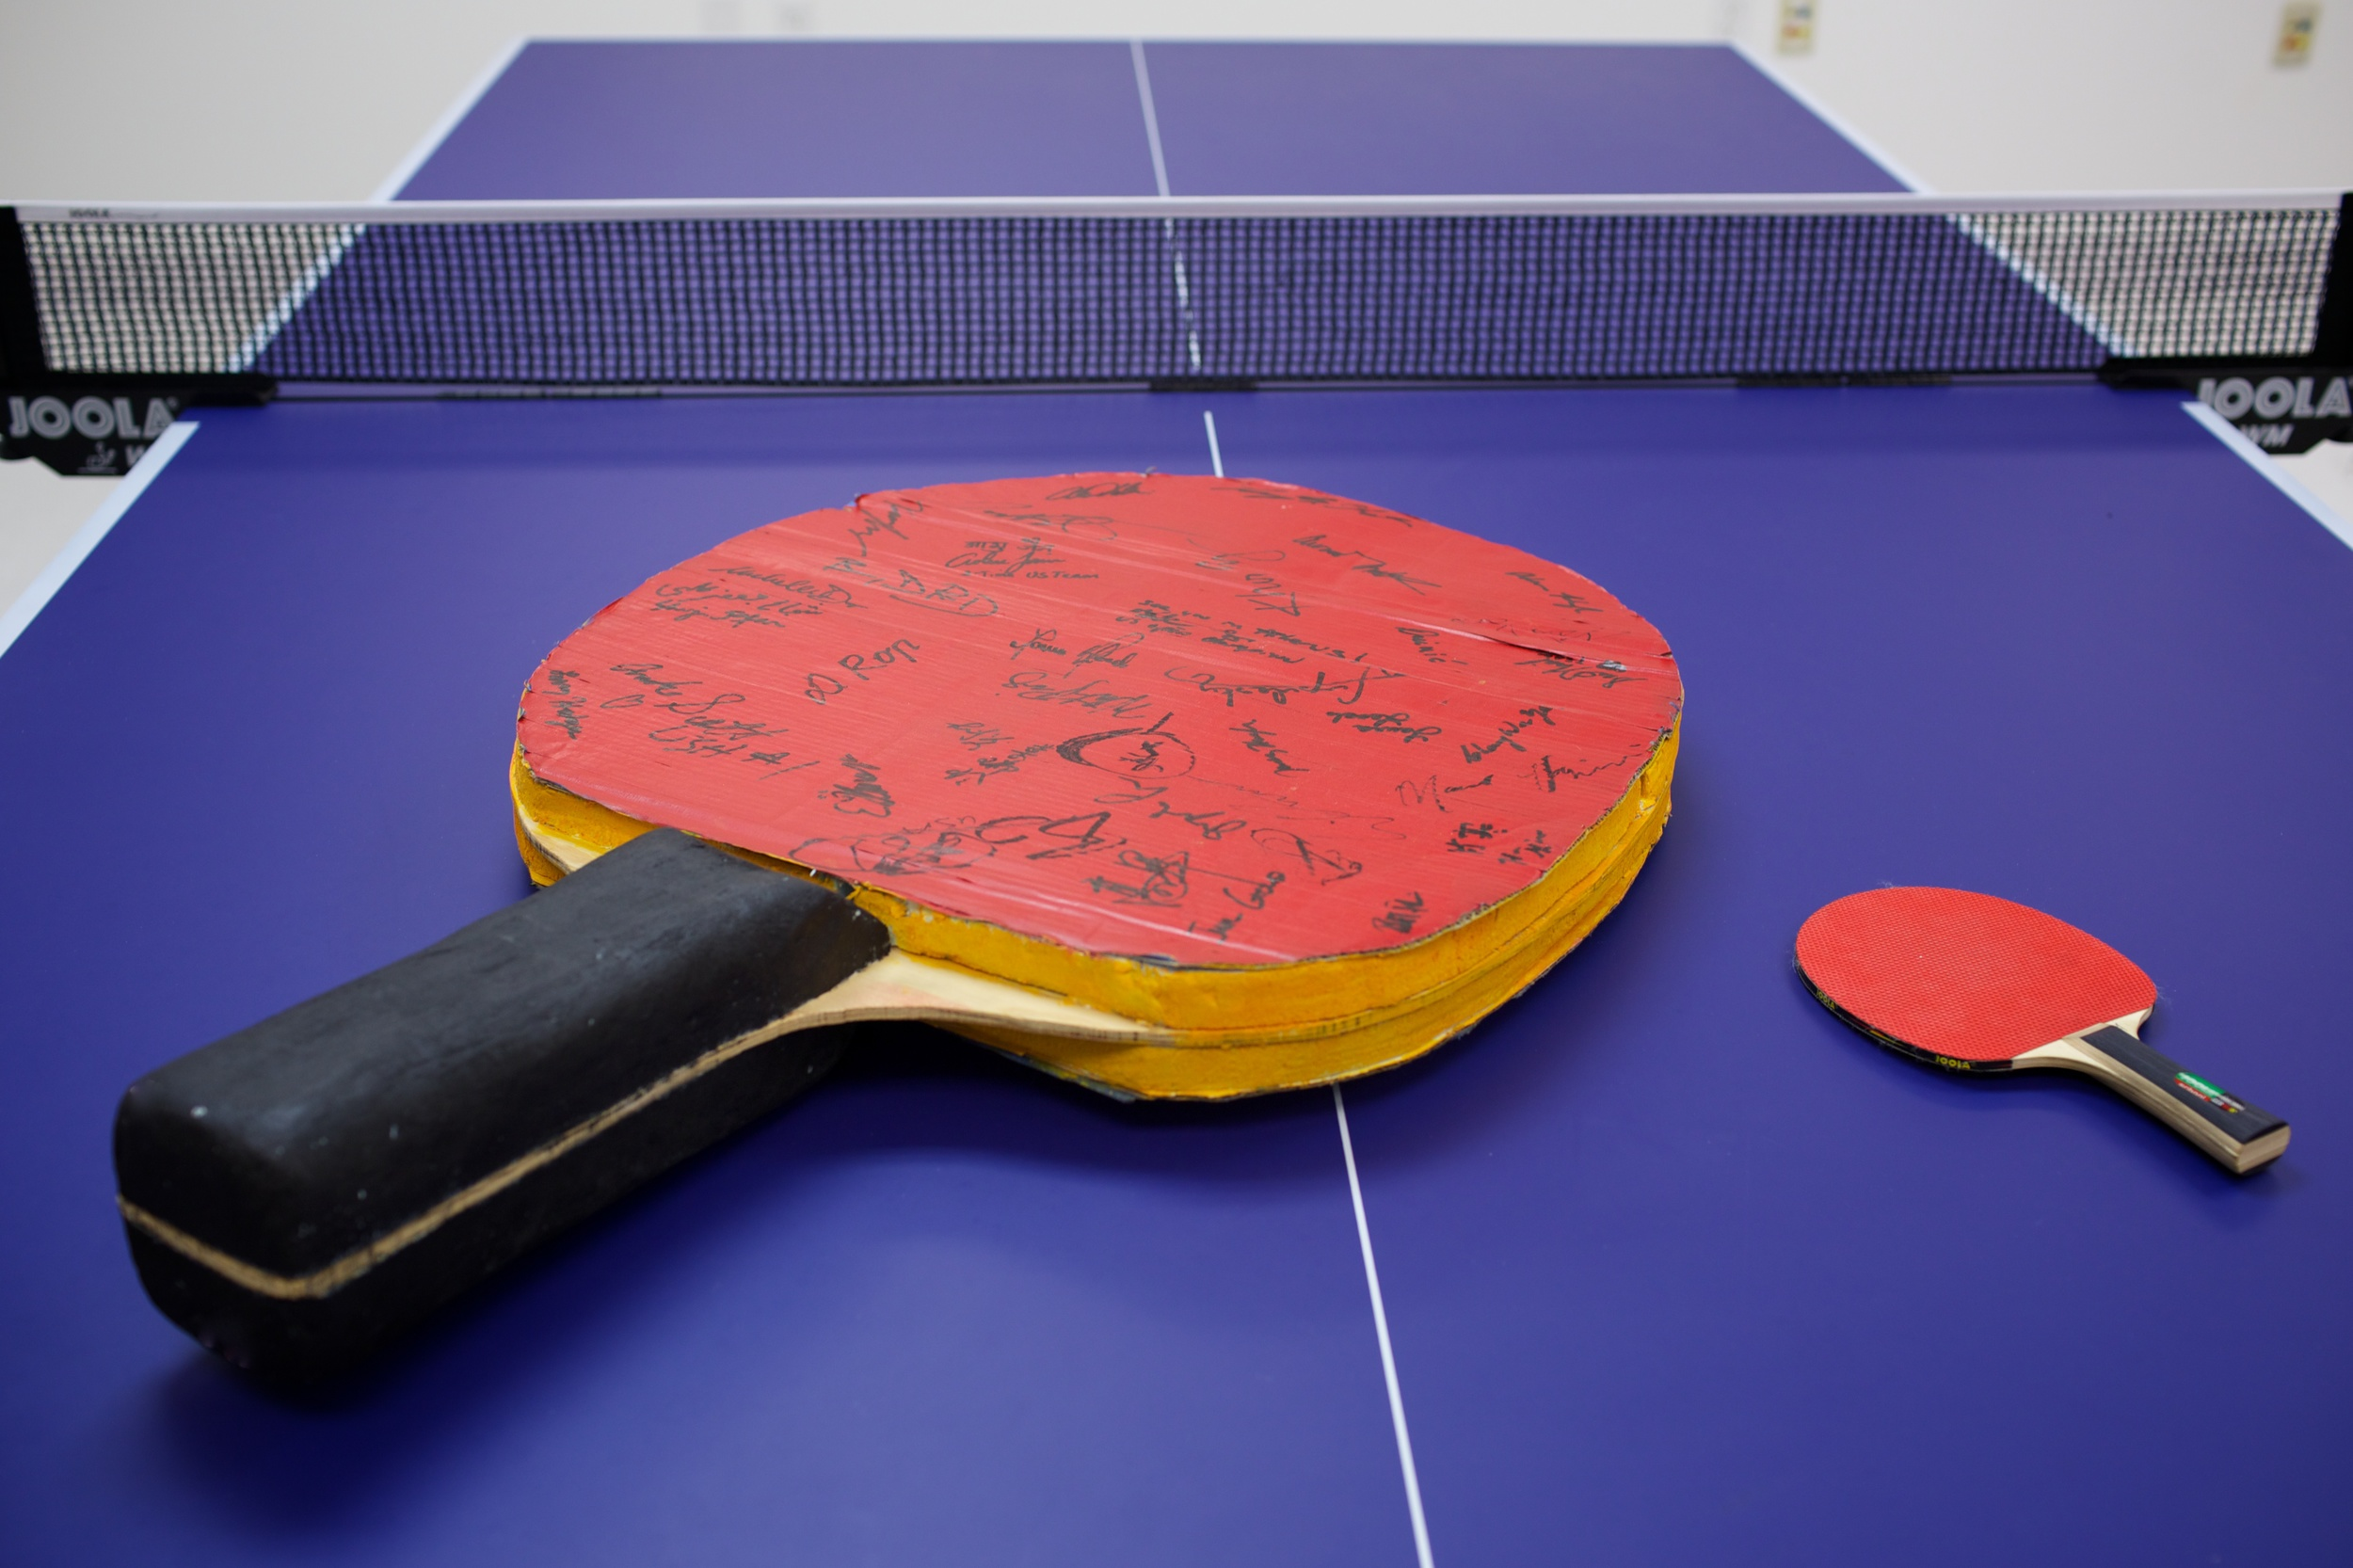 A monumental racket signed by the 2004 US Olympic Table Tennis Trials participants.